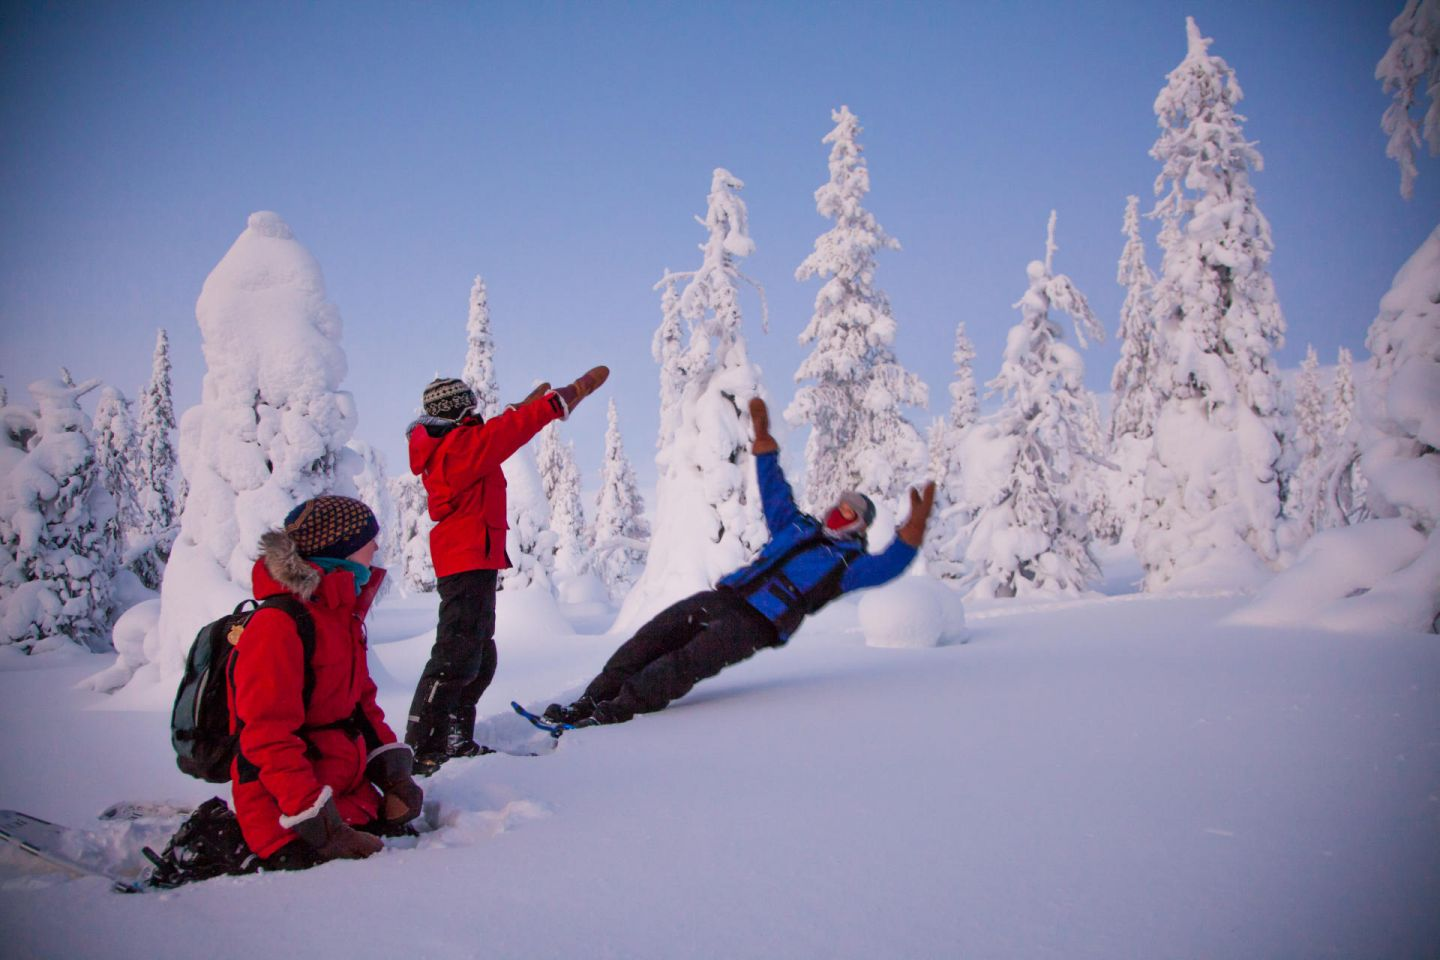 Having fun in the snow in Lapland in winter